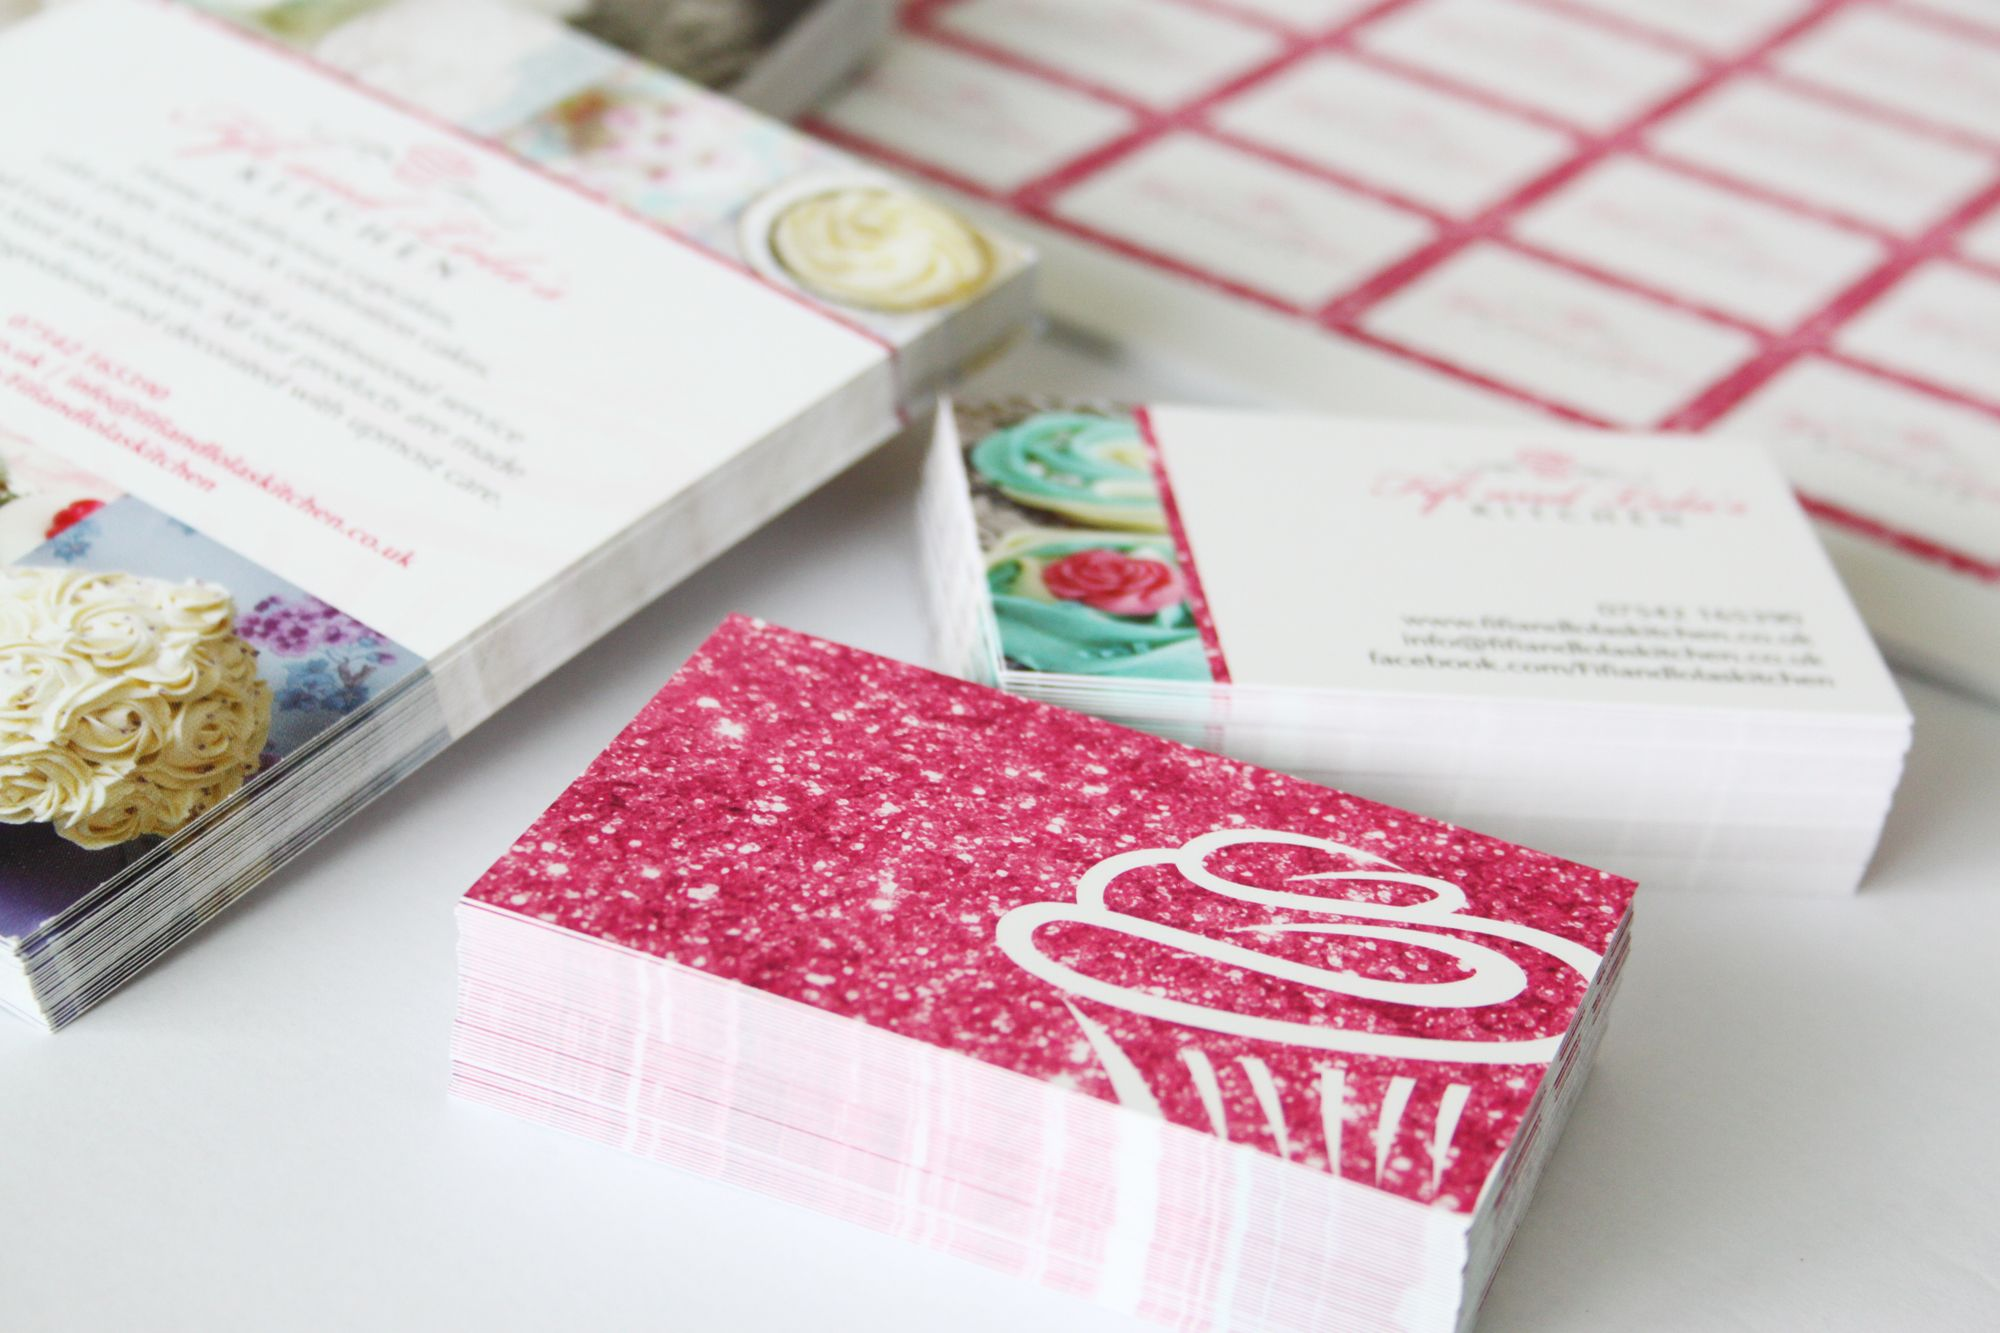 Pink glitter business card design for fifi lolas kitchen design pink glitter business card design for fifi lolas kitchen design copyright becky reheart Choice Image